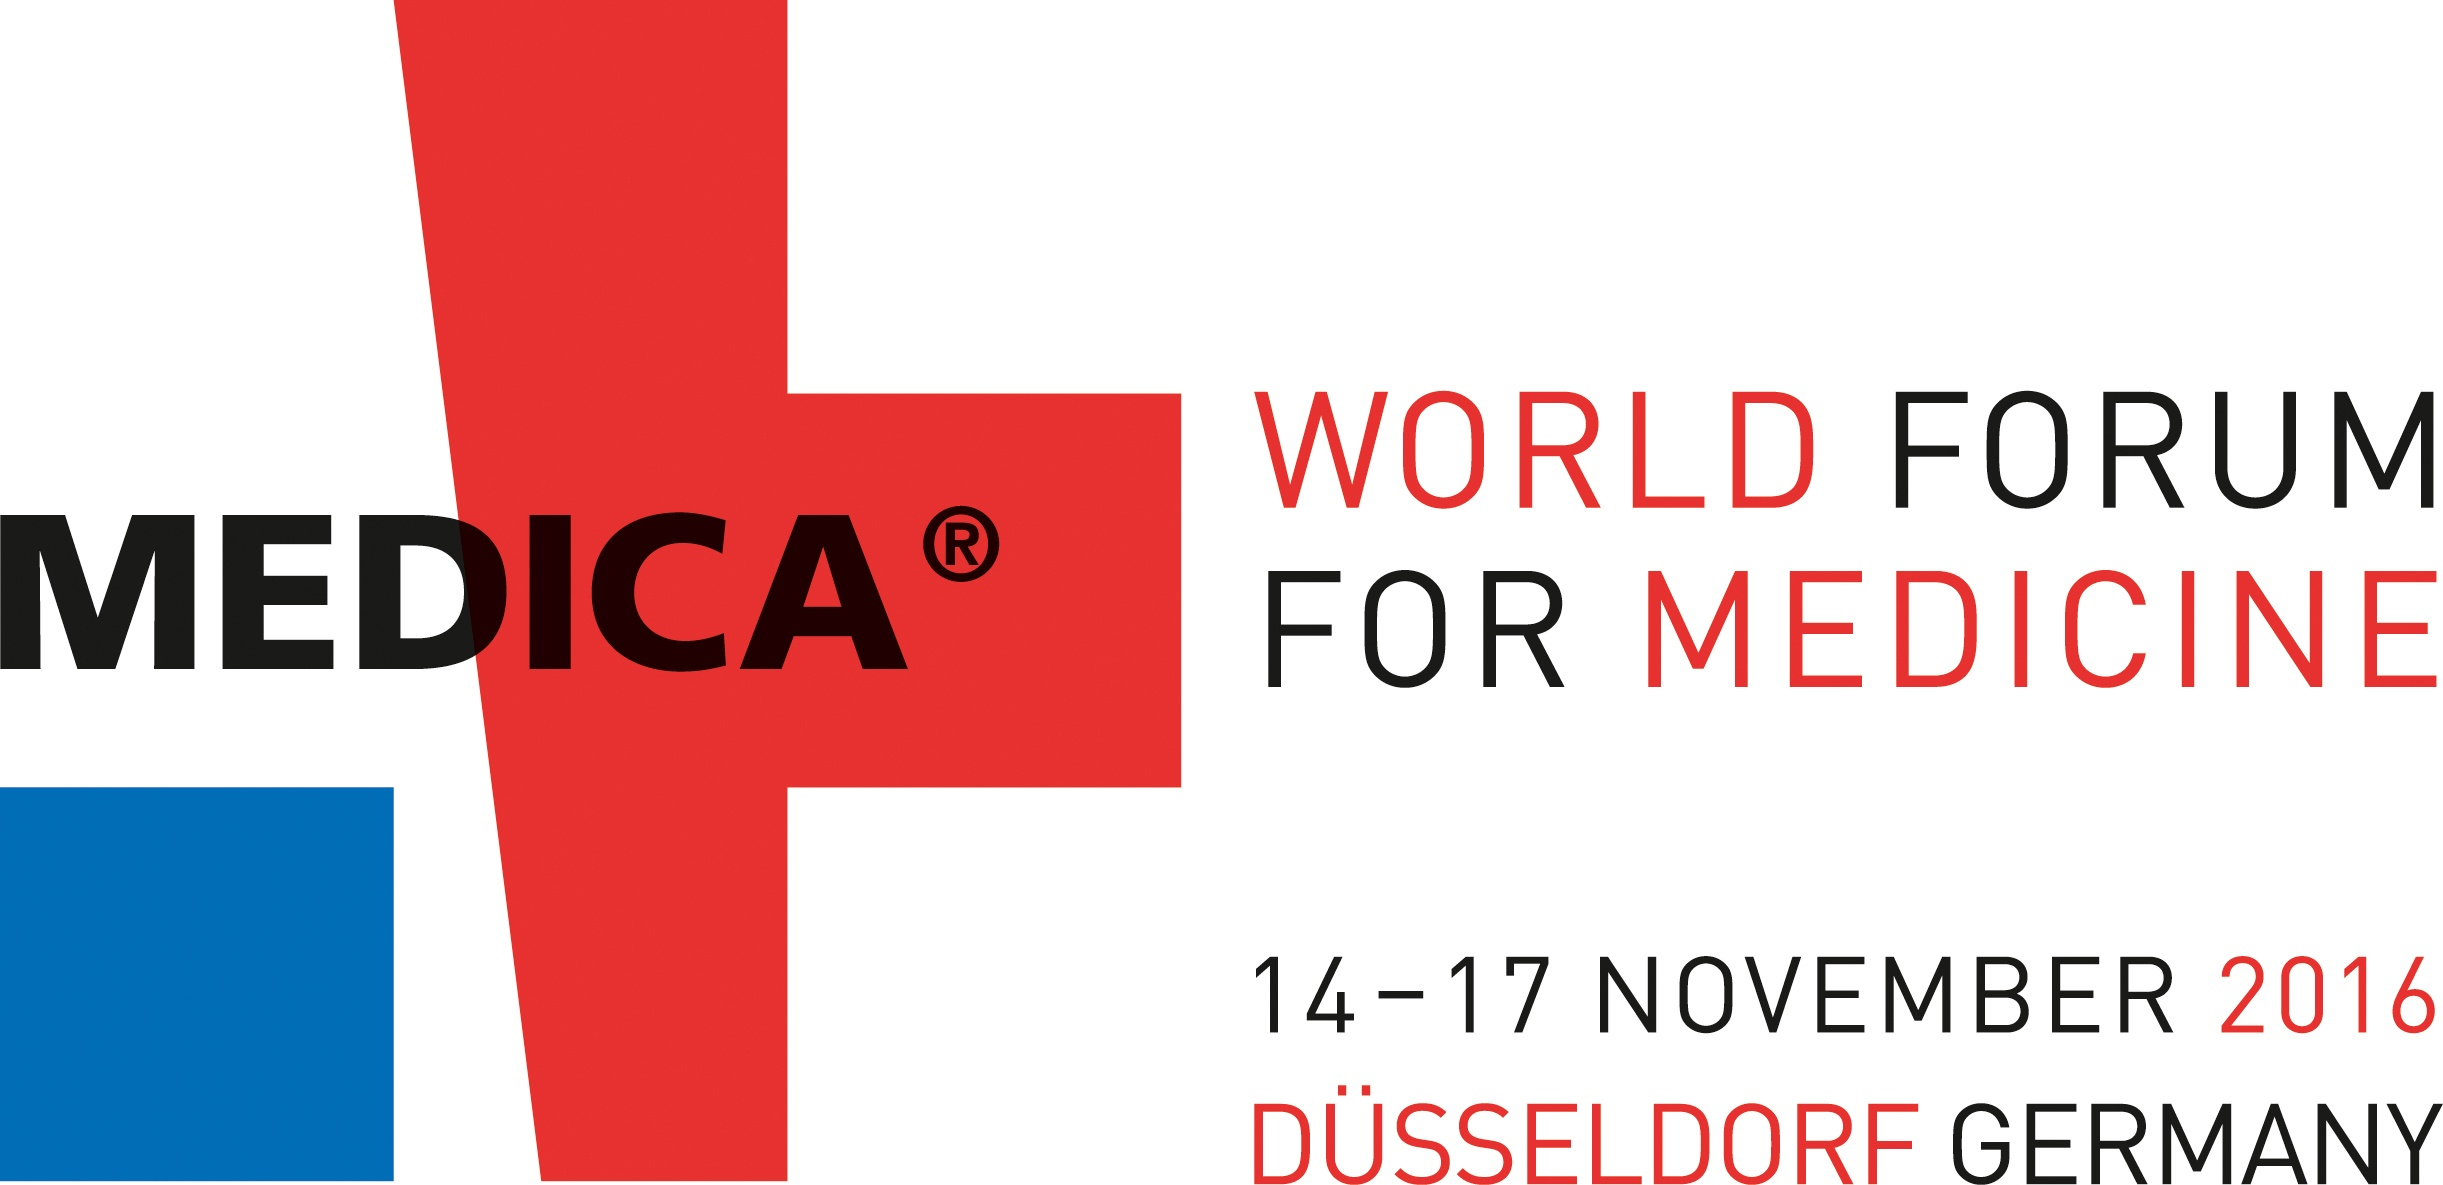 innokasmedical_fairs_events_medica_2016.jpg